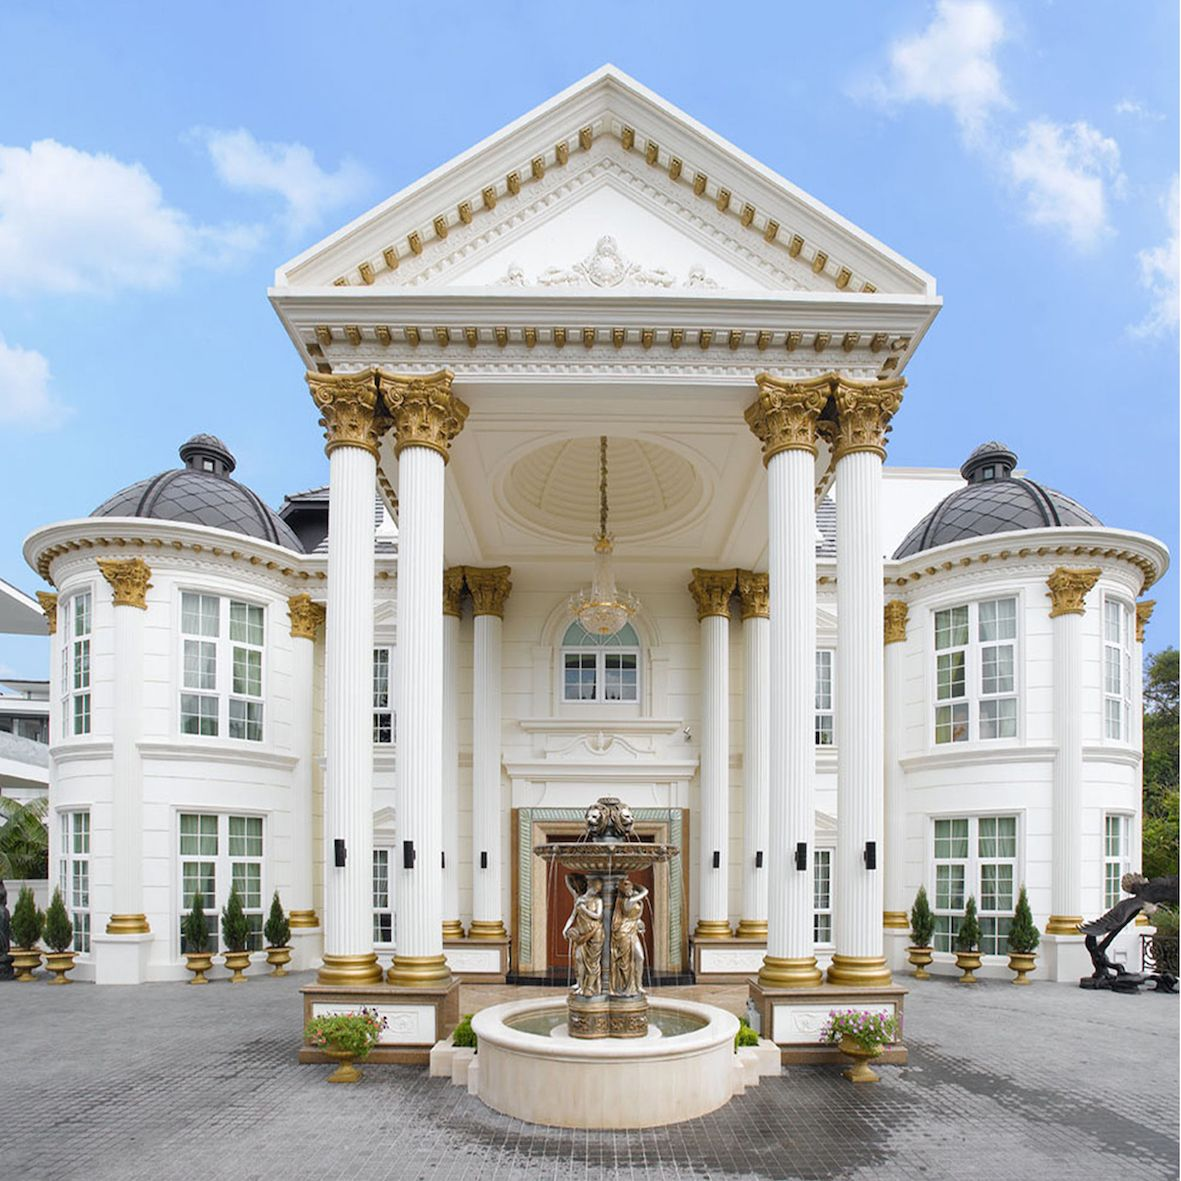 Luxury Apartment Building Entrance: Luxury Mediterranean Home. Architecture#Grand Entrance